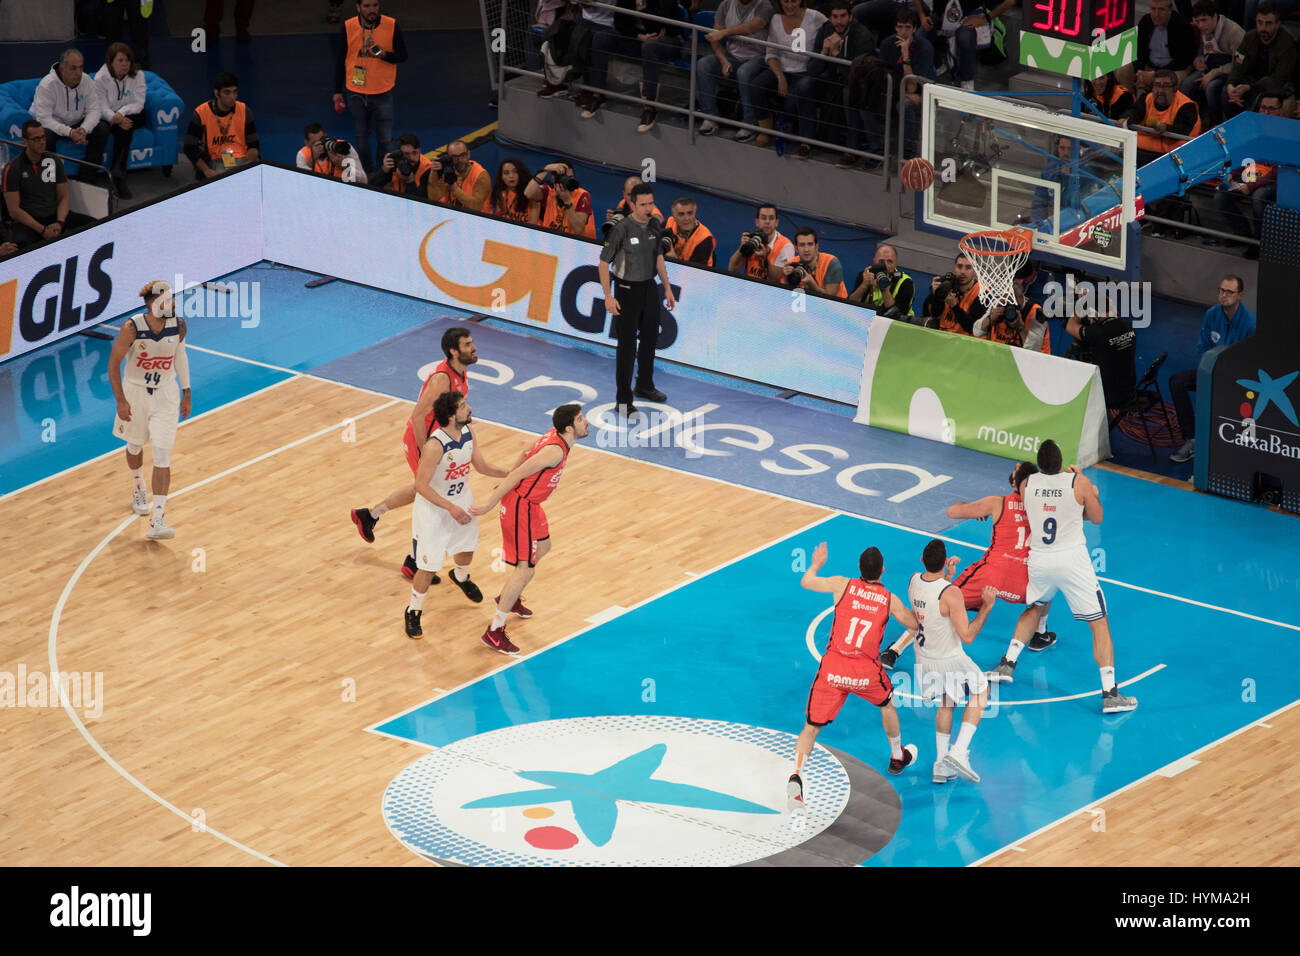 Vitoria, Spain - February 19, 2017: Some basketball players in action at Spanish Copa del rey final match between Stock Photo